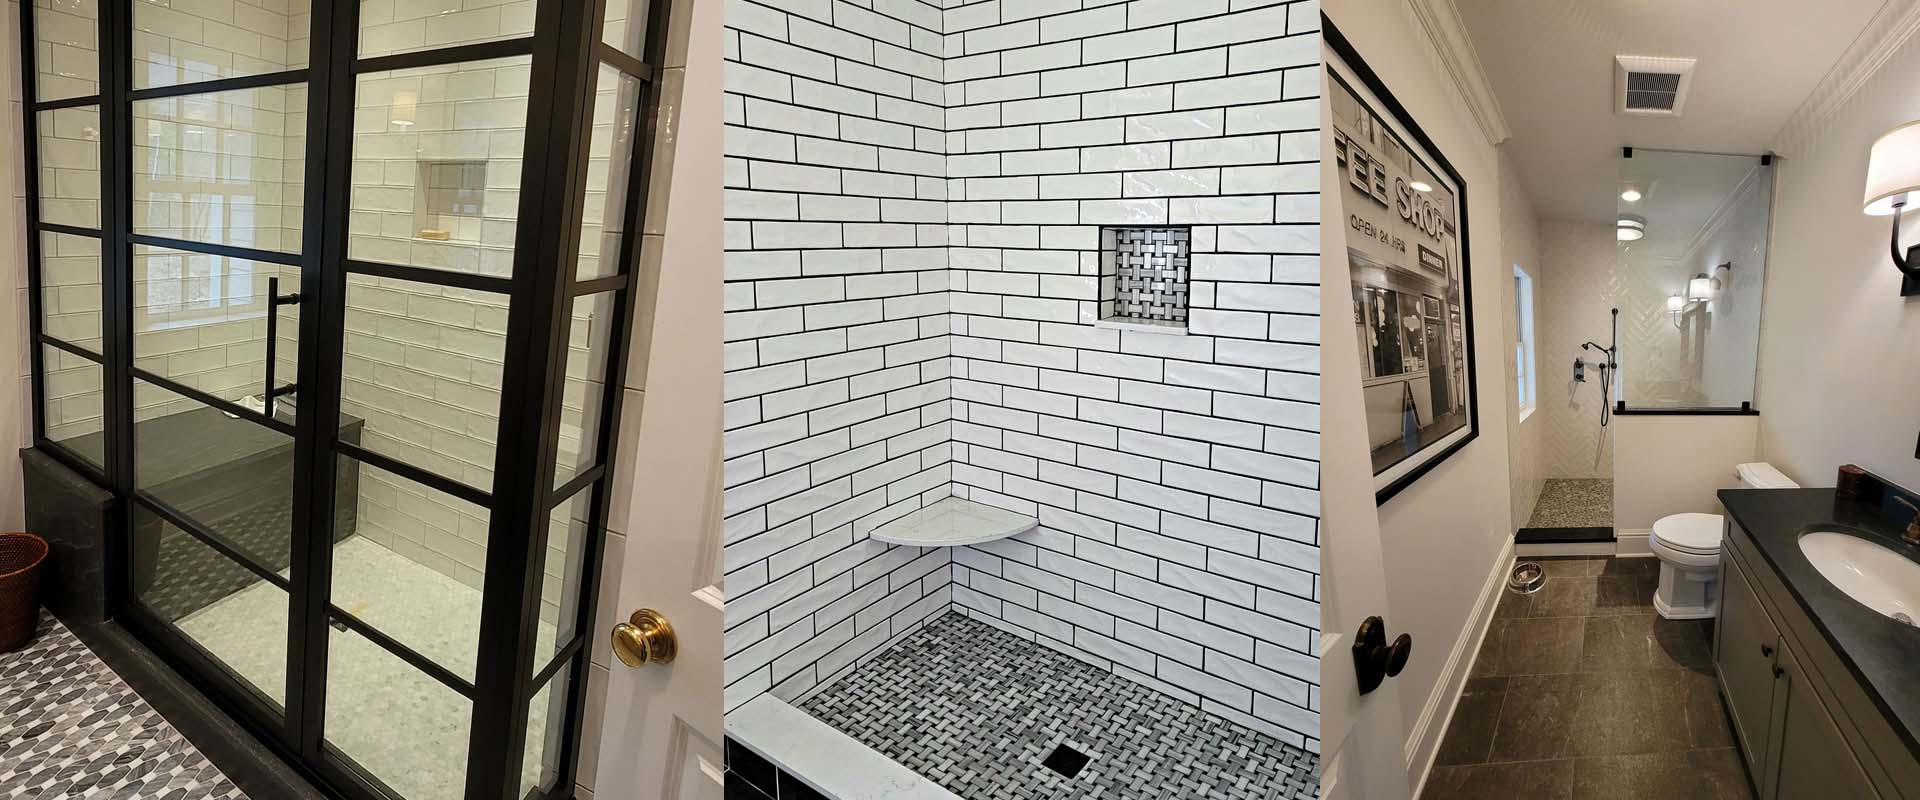 Lyons Pride Tile and Marble